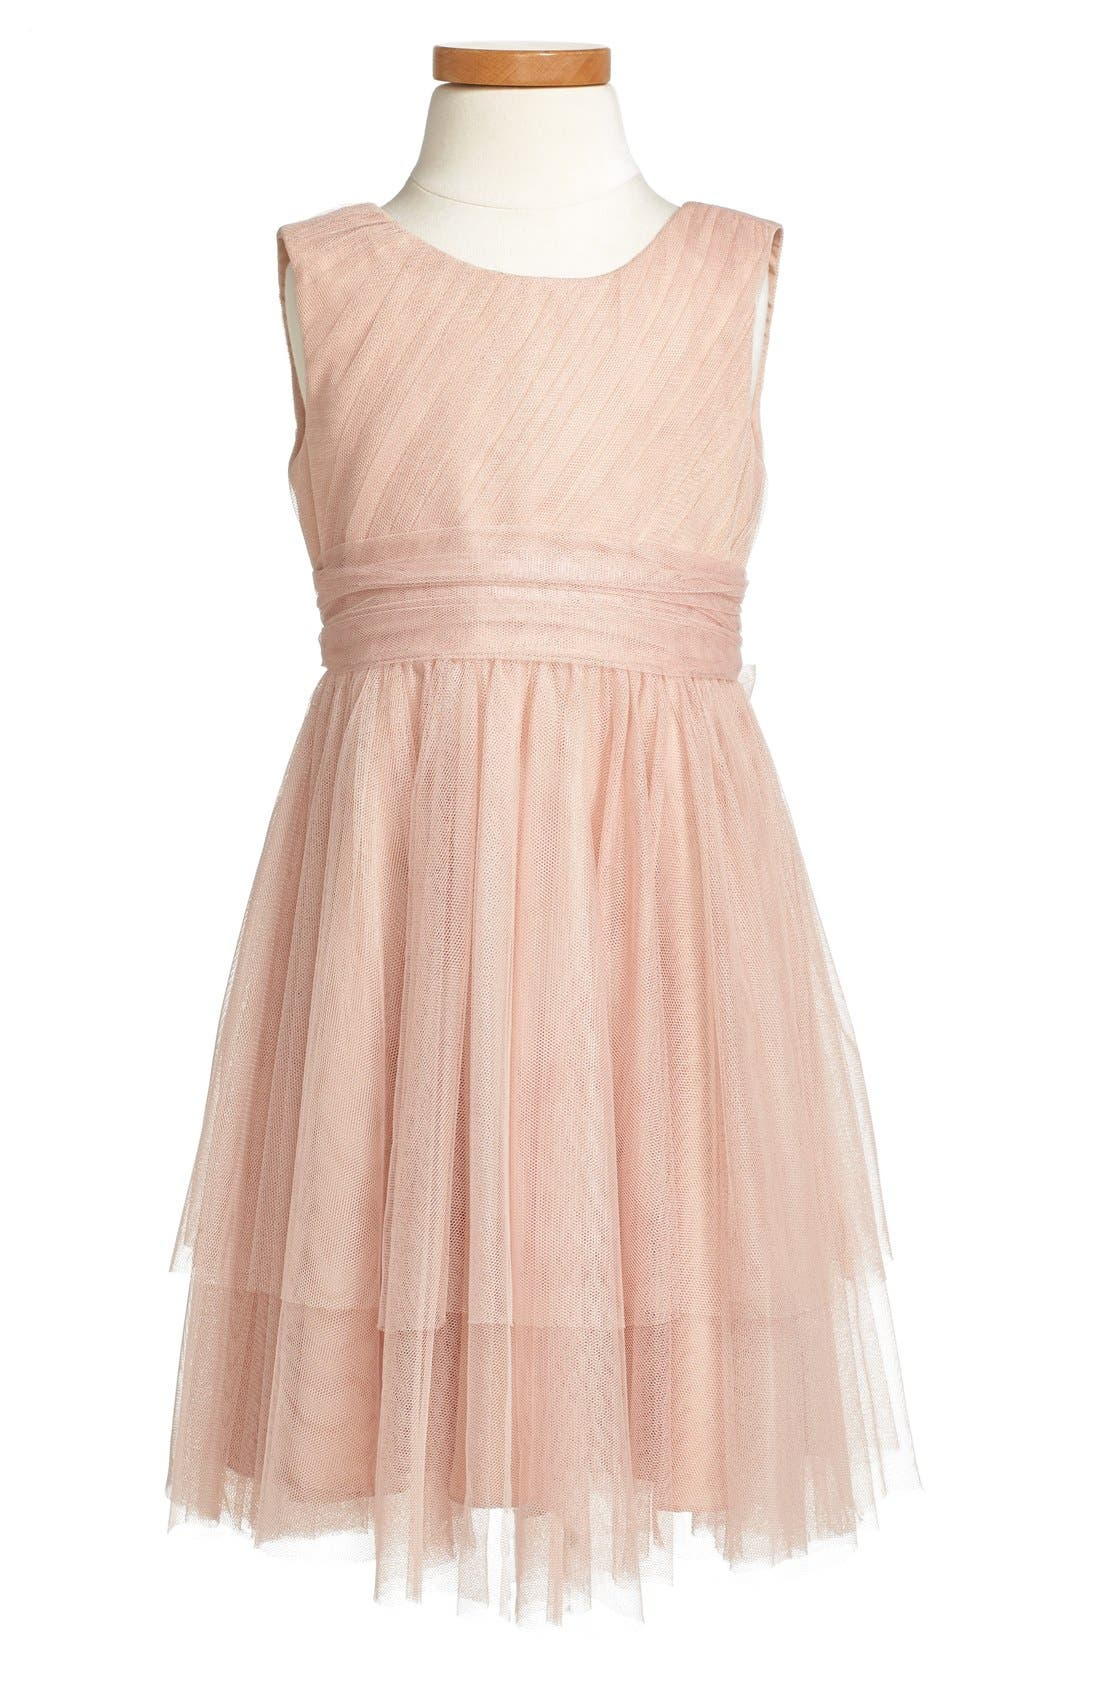 Etsy Tulle Dress,                             Alternate thumbnail 4, color,                             CAMEO PINK